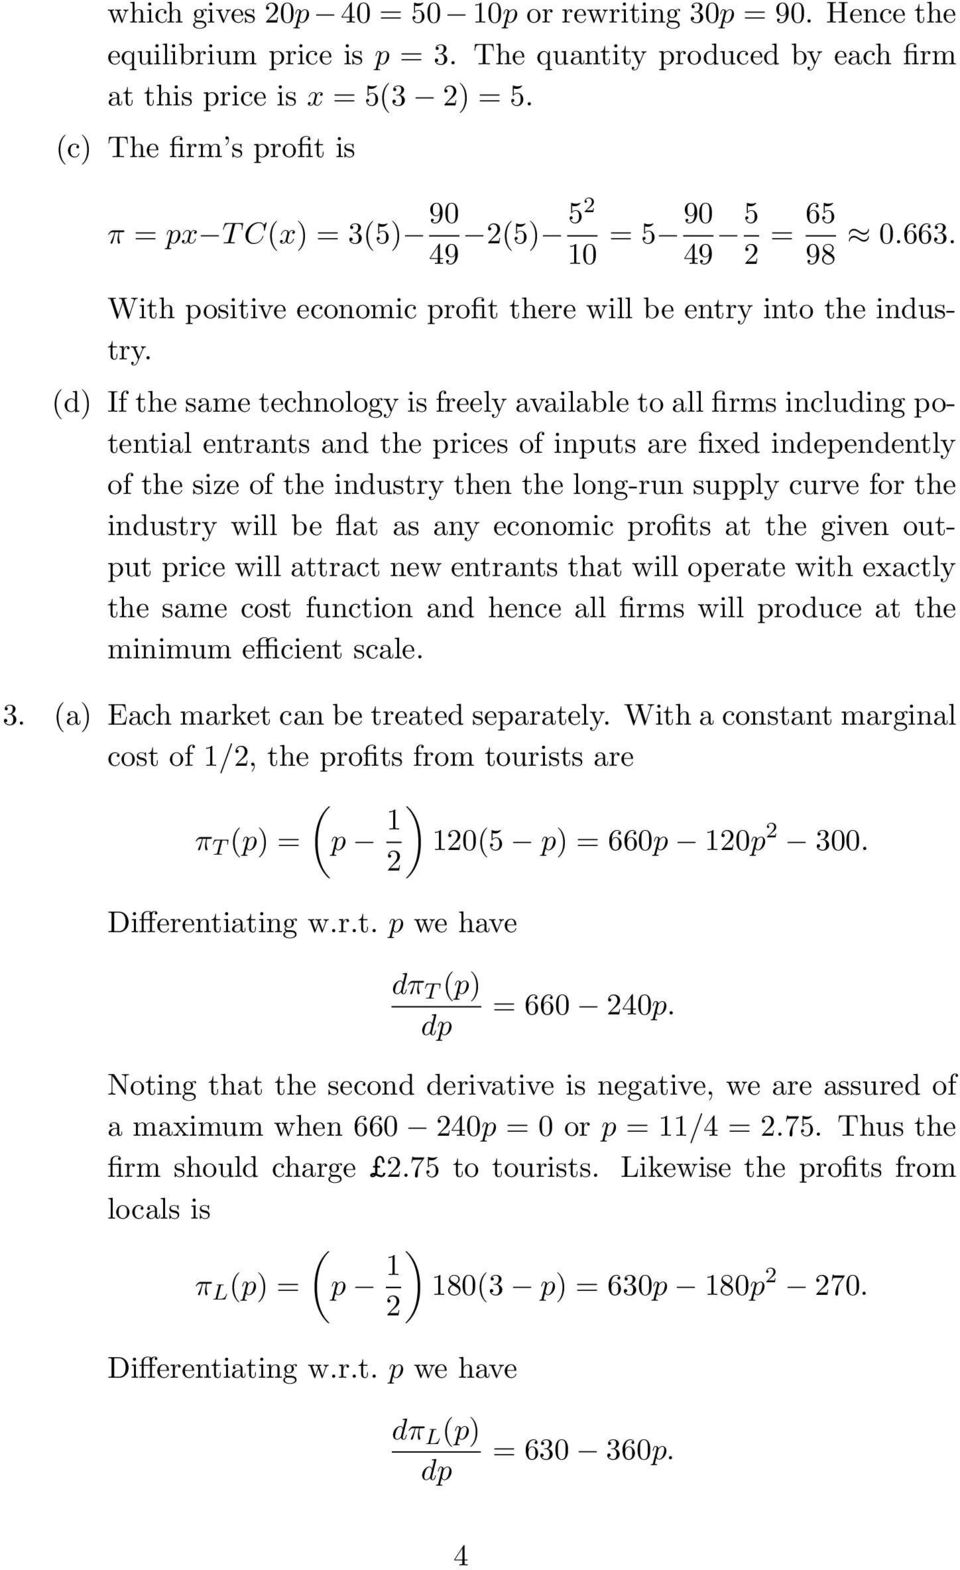 (d) If the same technology is freely available to all firms including potential entrants and the prices of inputs are fixed independently of the size of the industry then the long-run supply curve